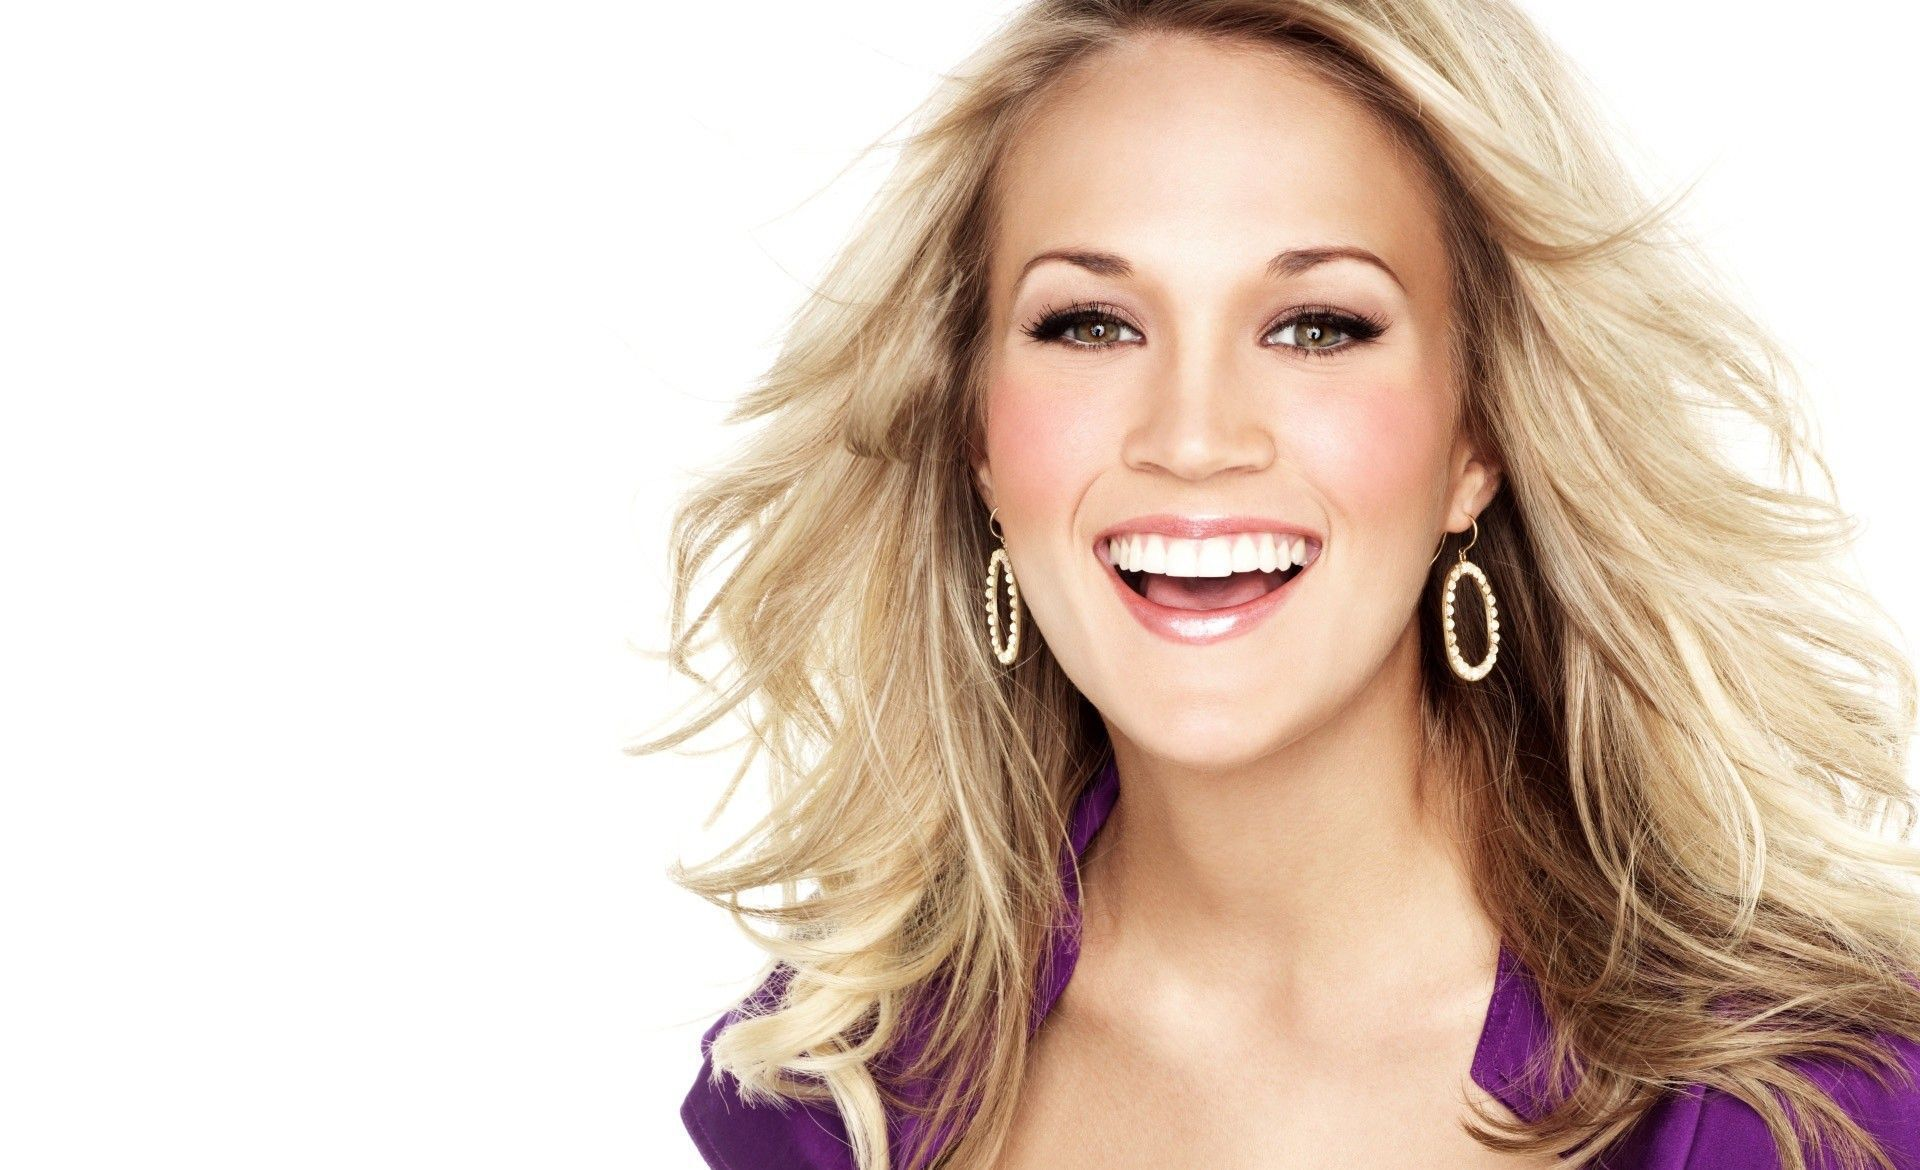 Country Music Stars Wallpaper: Carrie Underwood Wallpapers Backgrounds